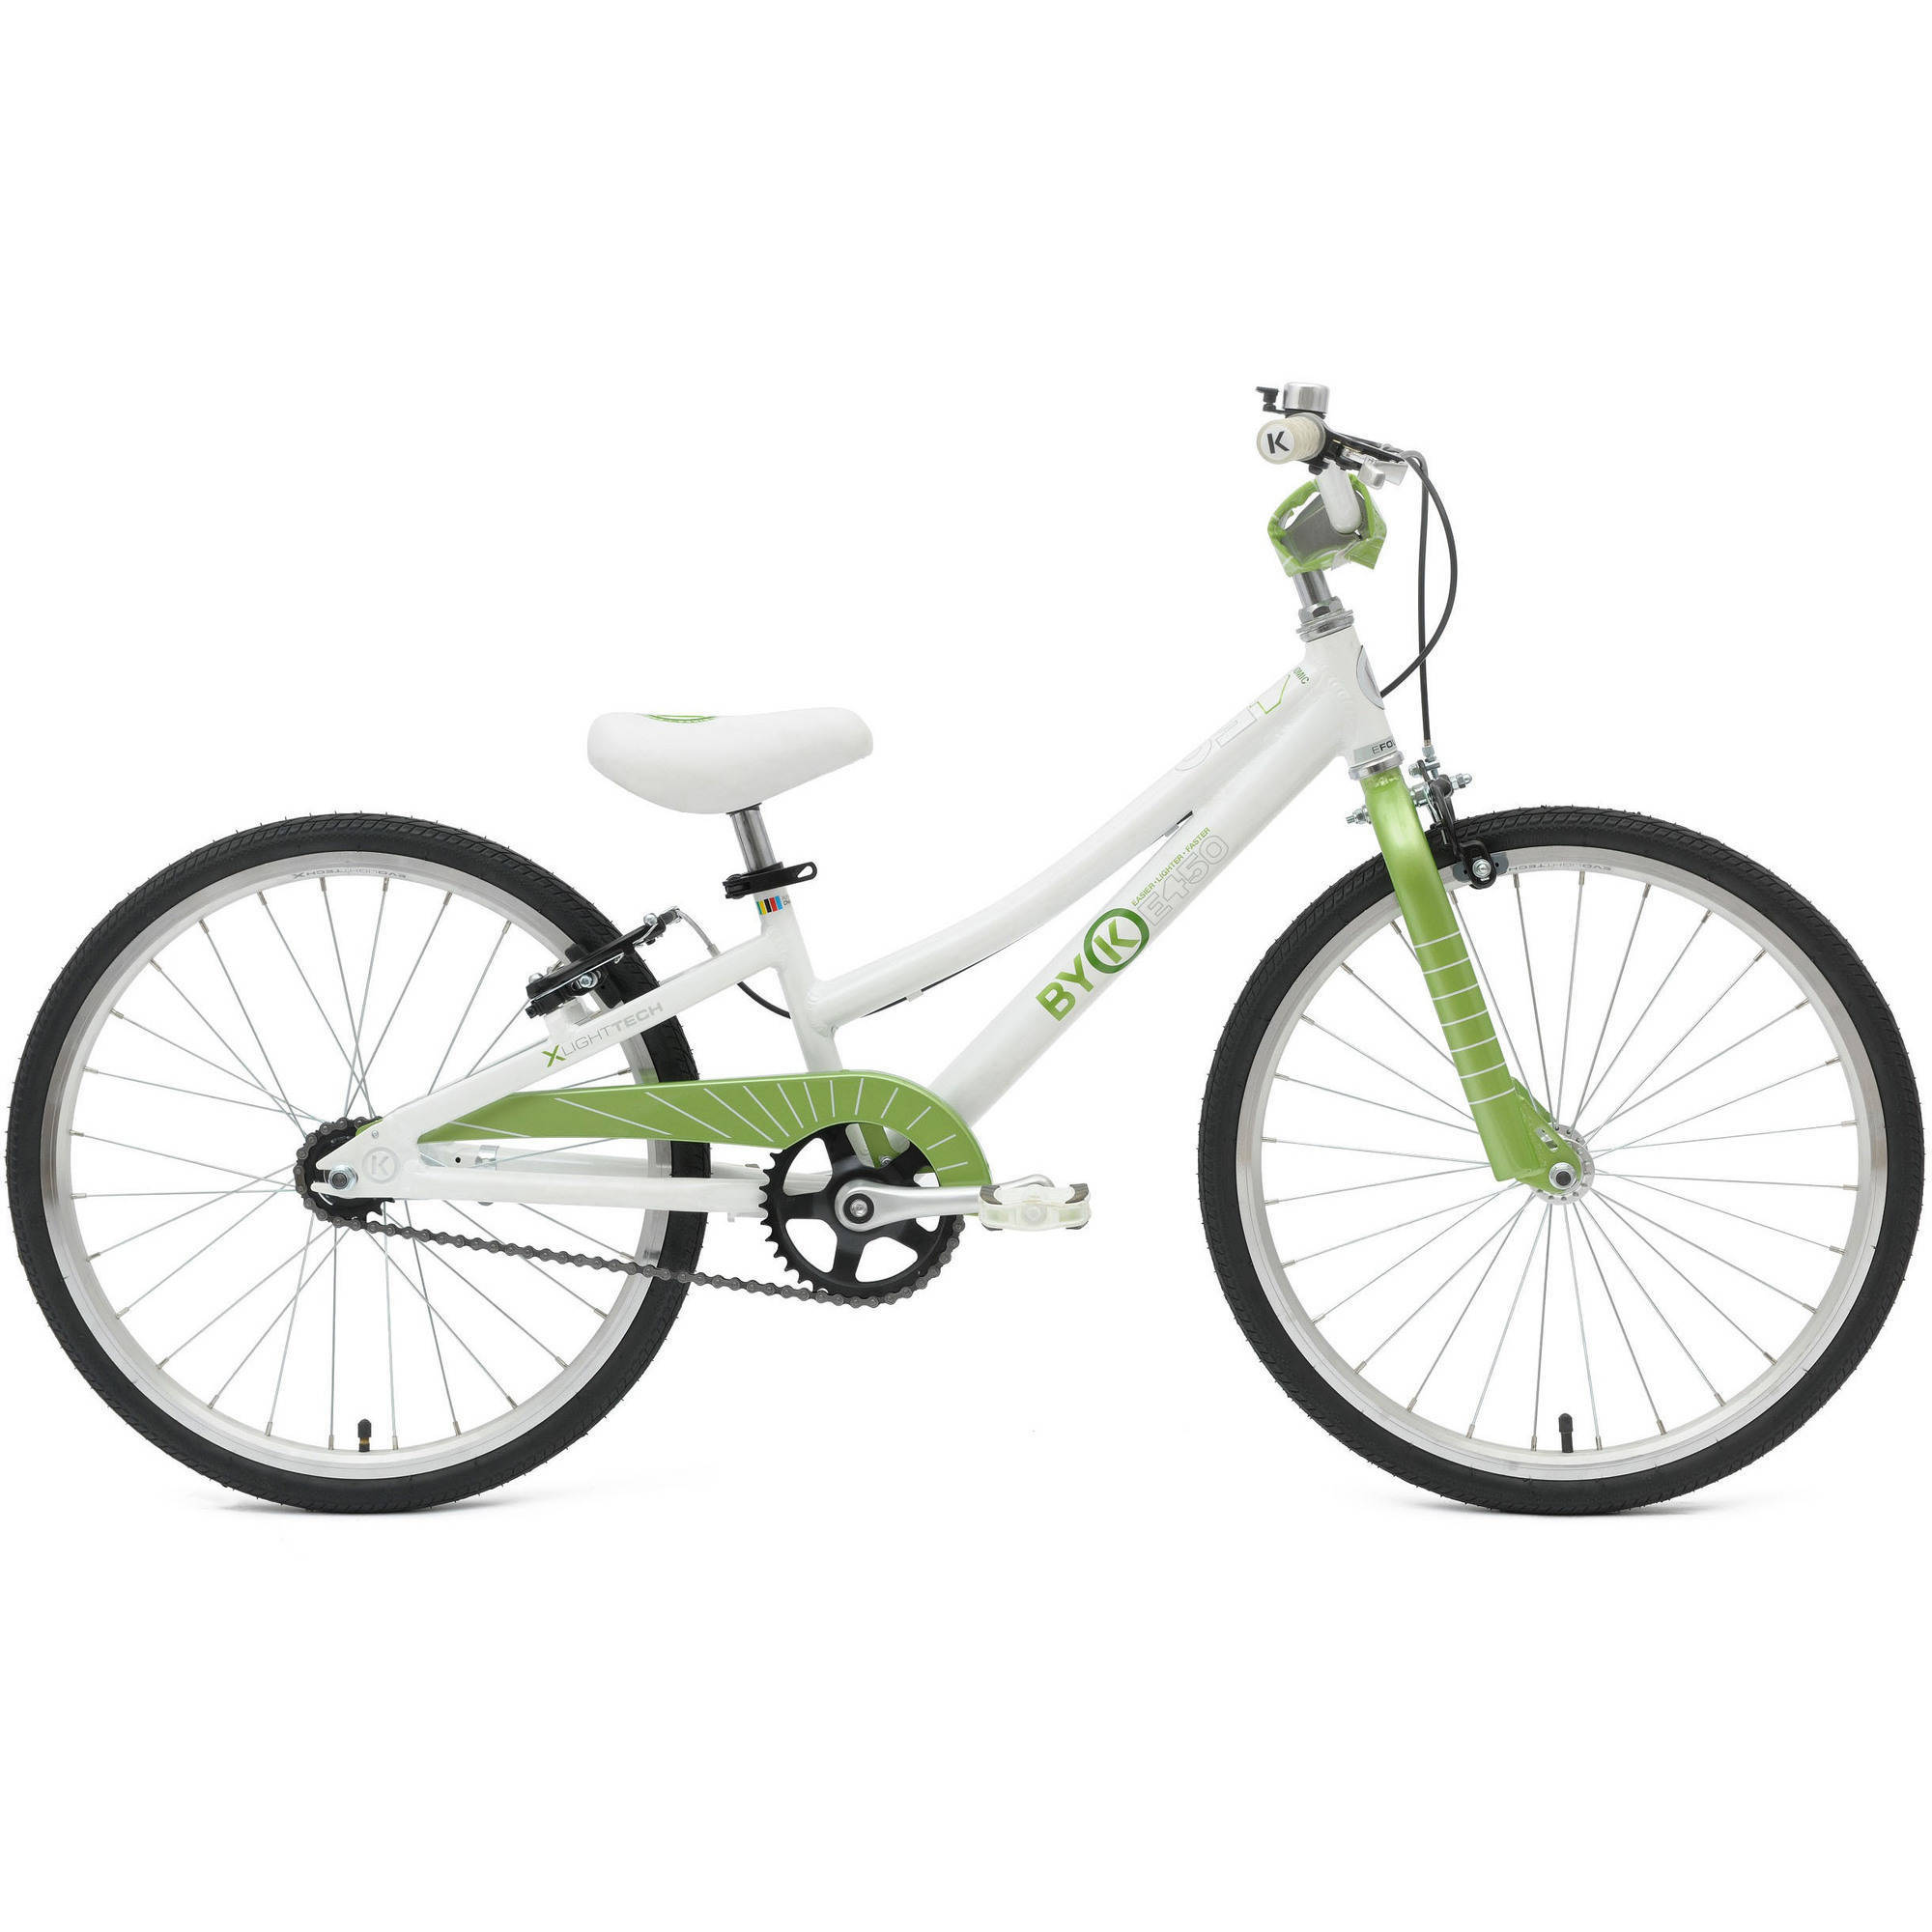 ByK E-450 20 inch Kids Bicycle by Cycle Force Group